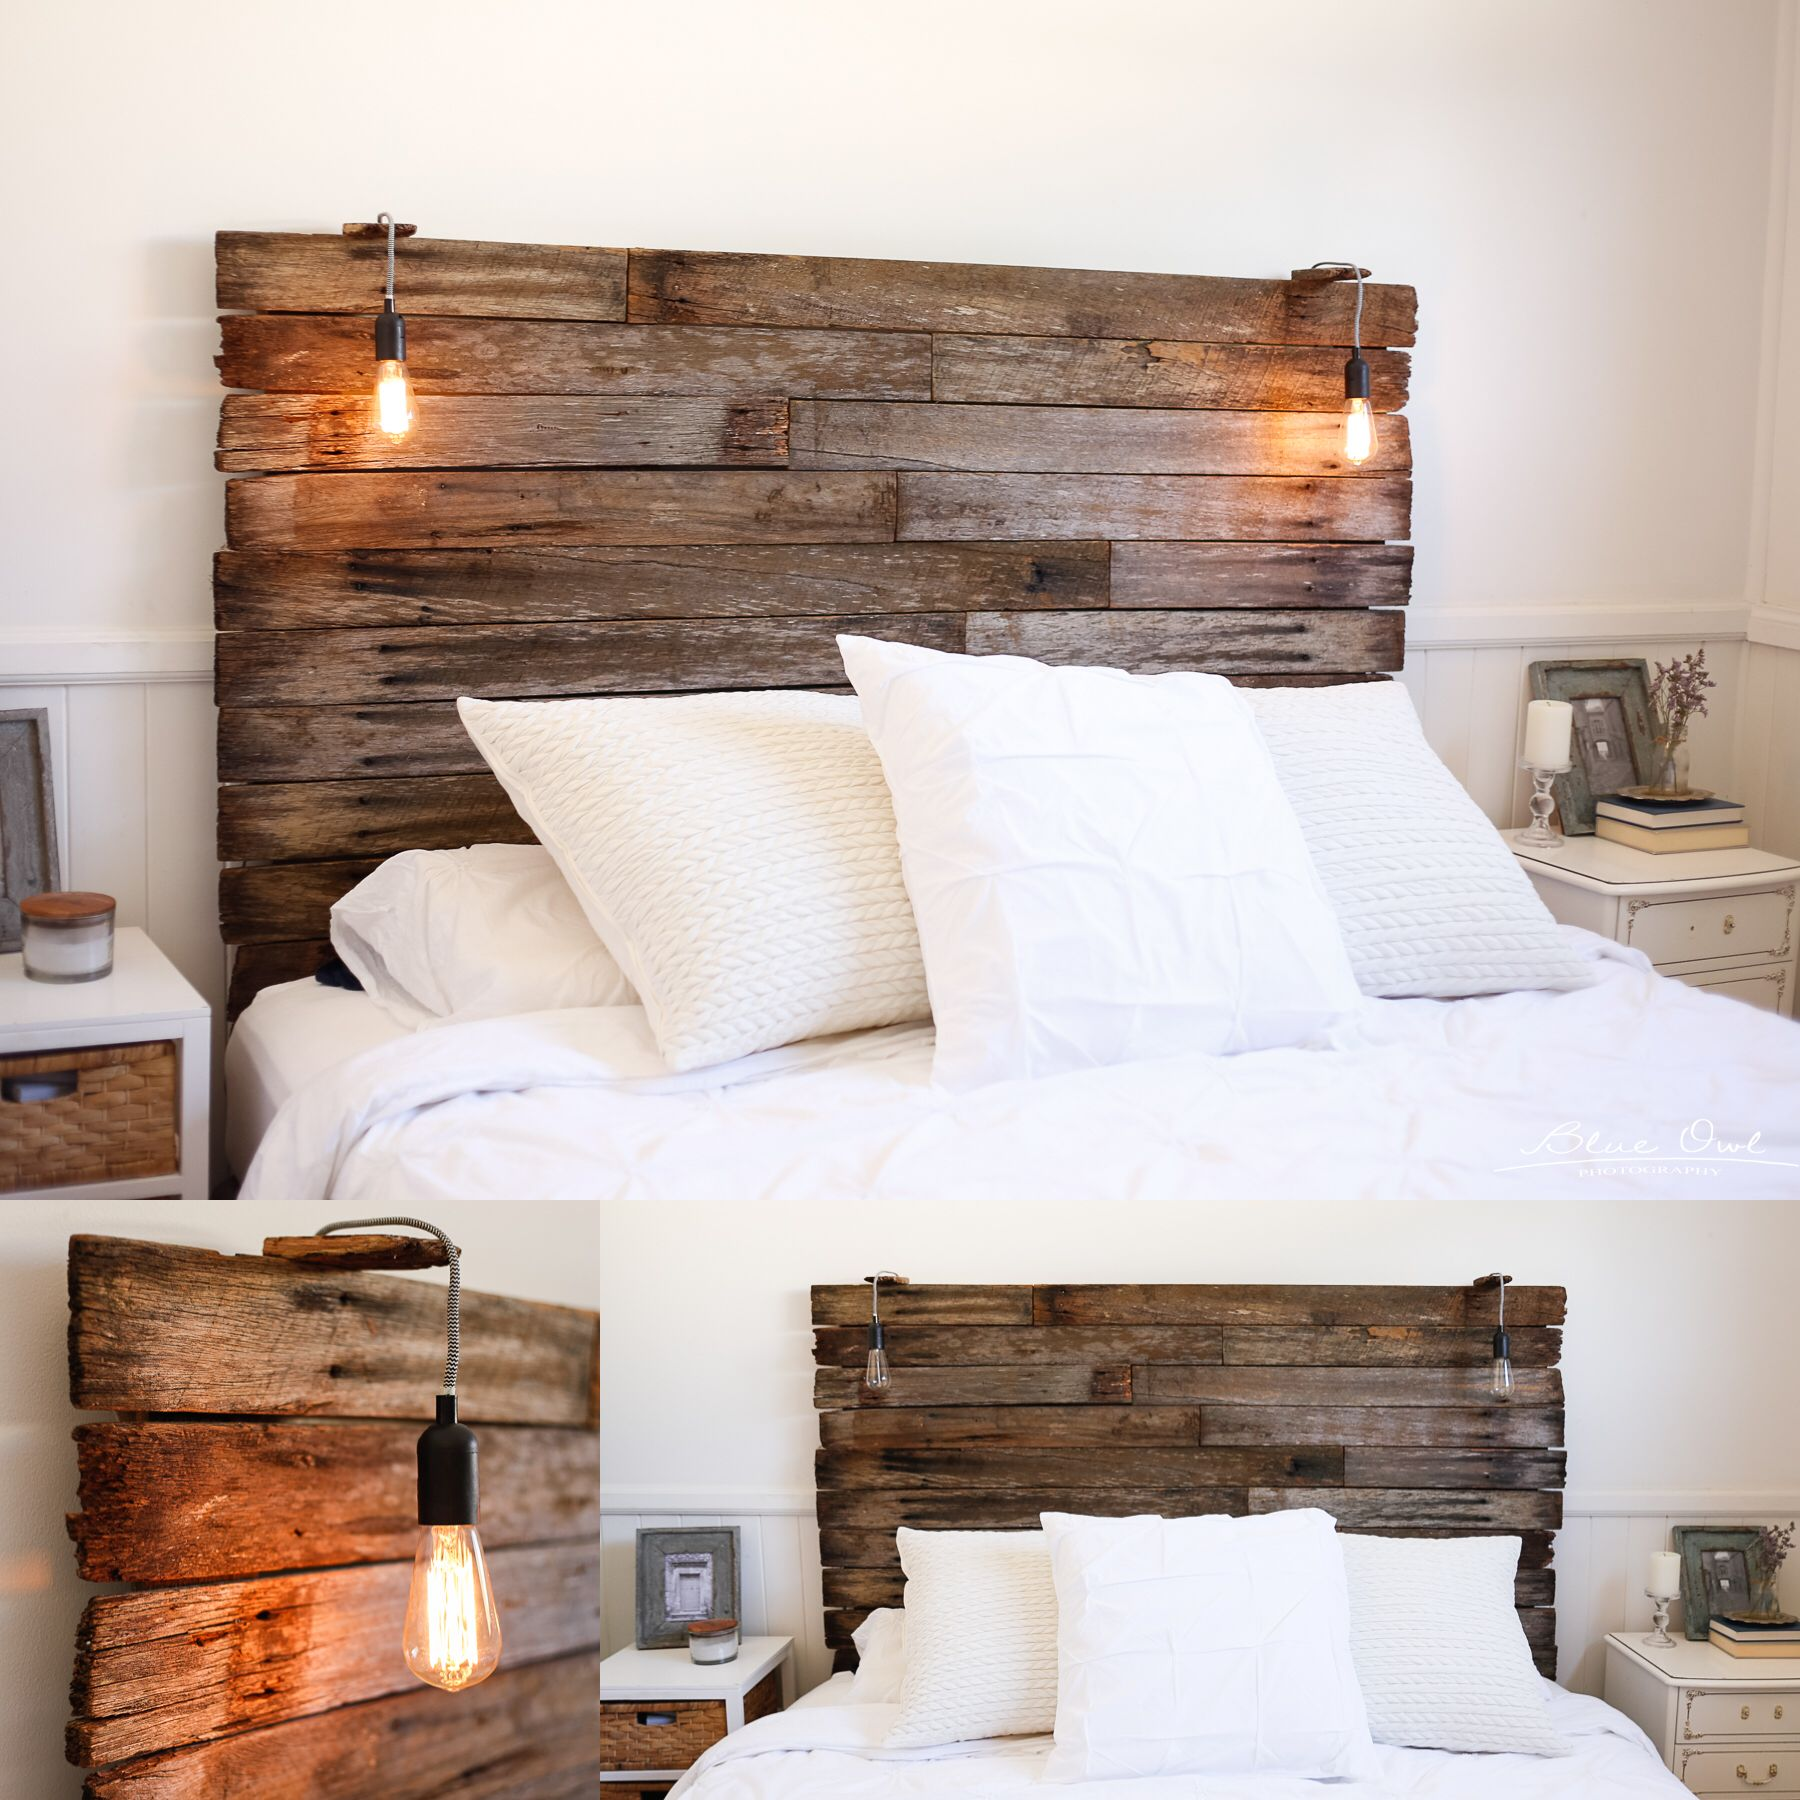 my recycled rustic fence pailing timber bedhead lamp. Black Bedroom Furniture Sets. Home Design Ideas